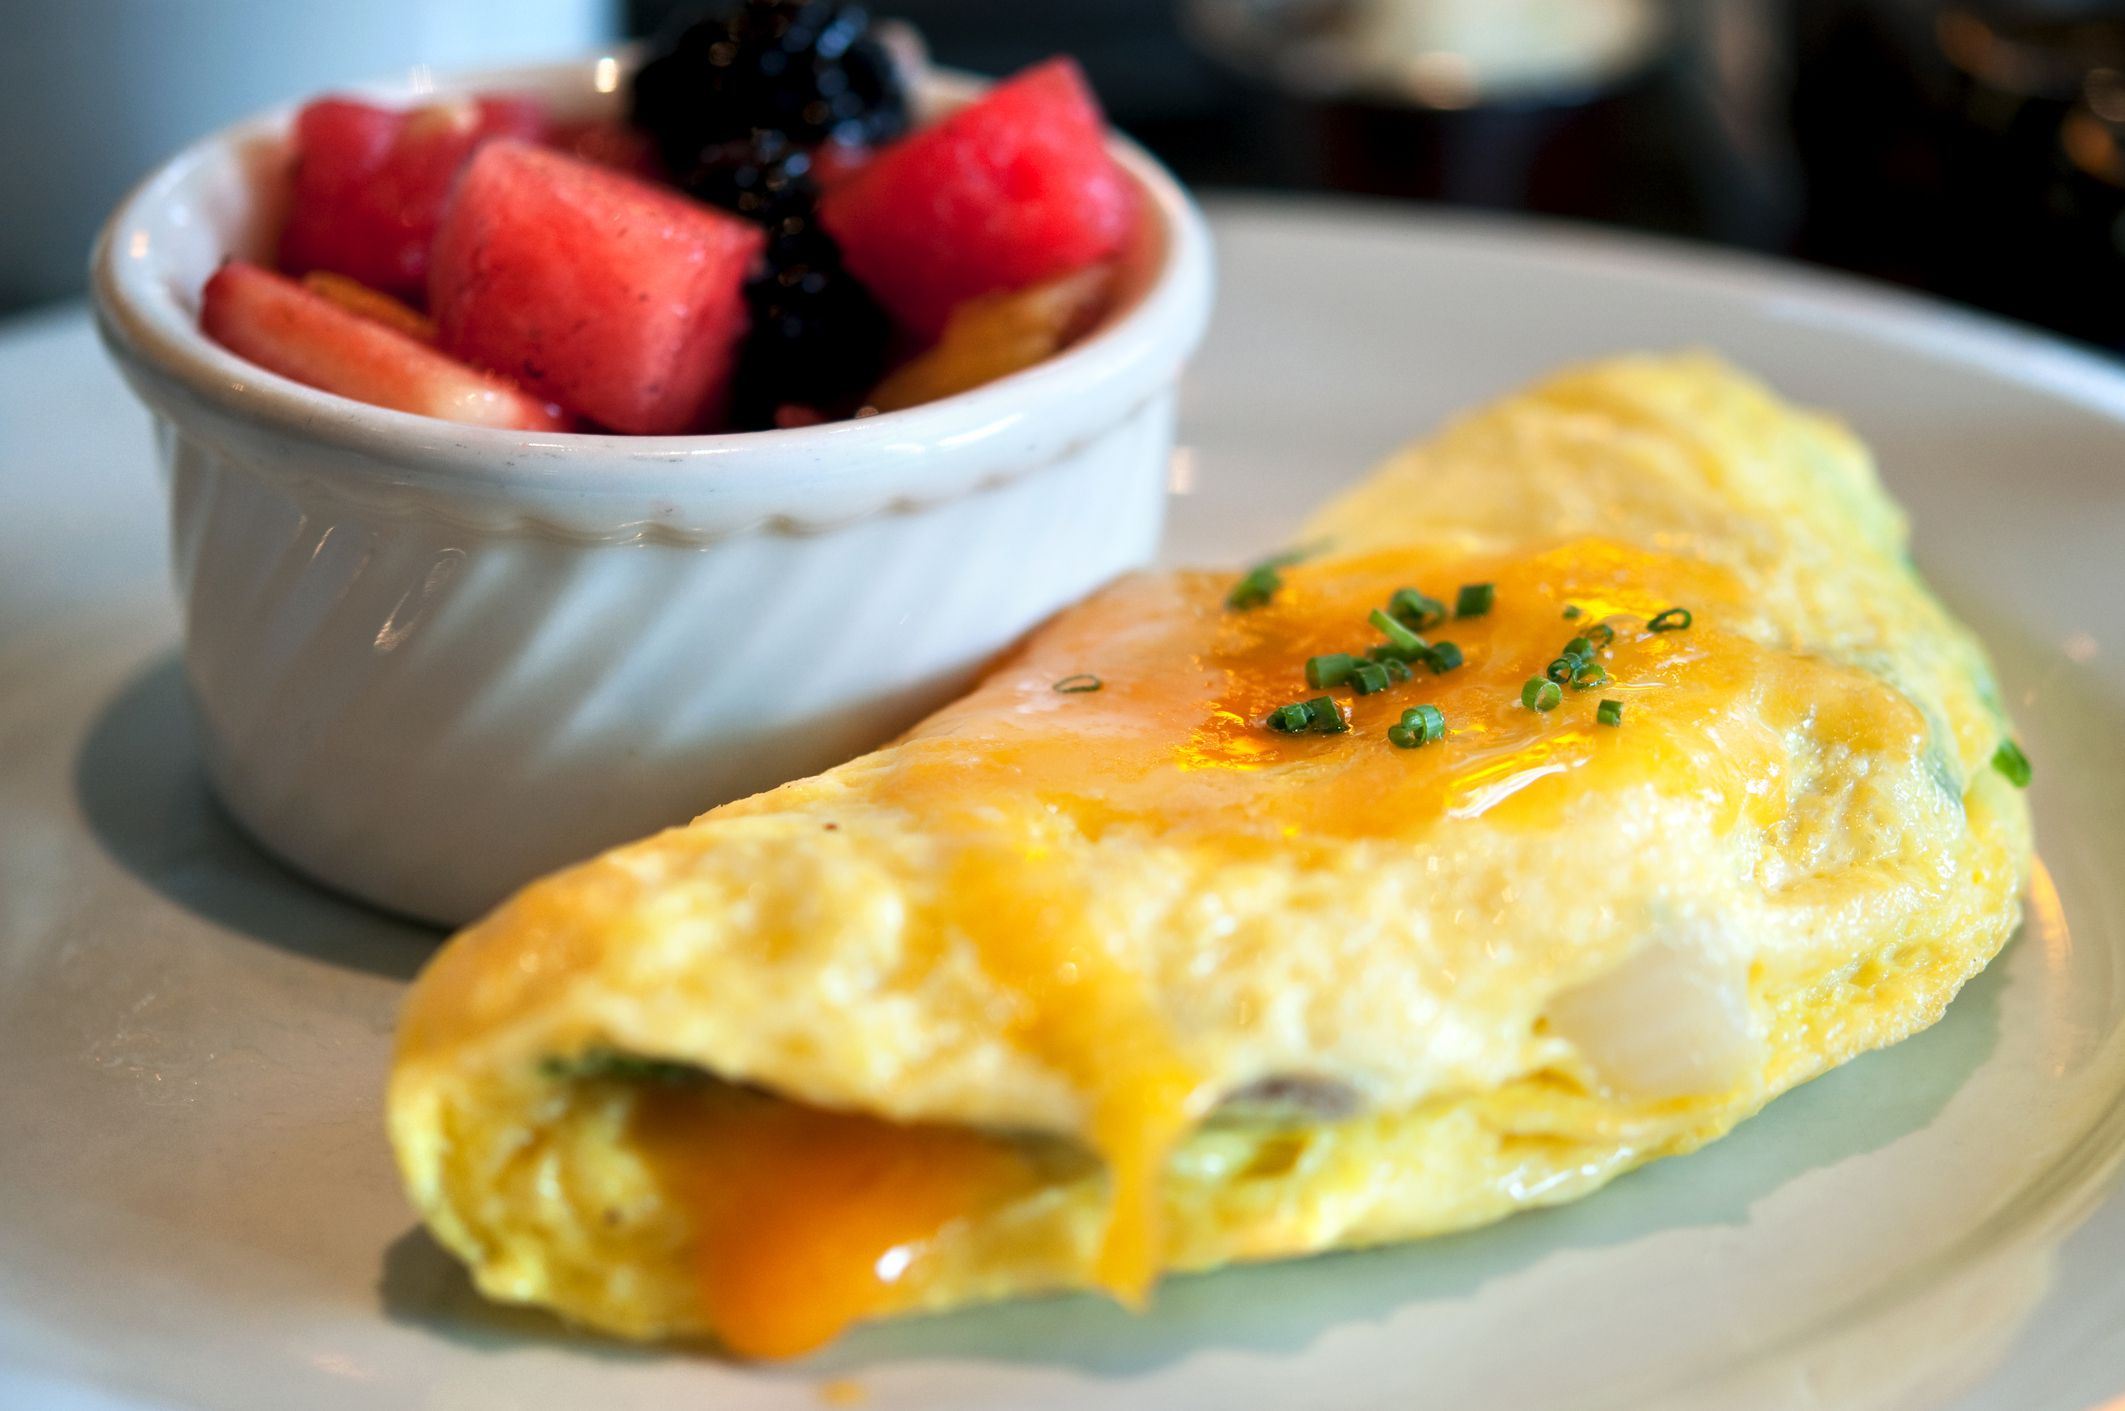 Omelet Recipe For Kids: Simple And Yummy Ingredients